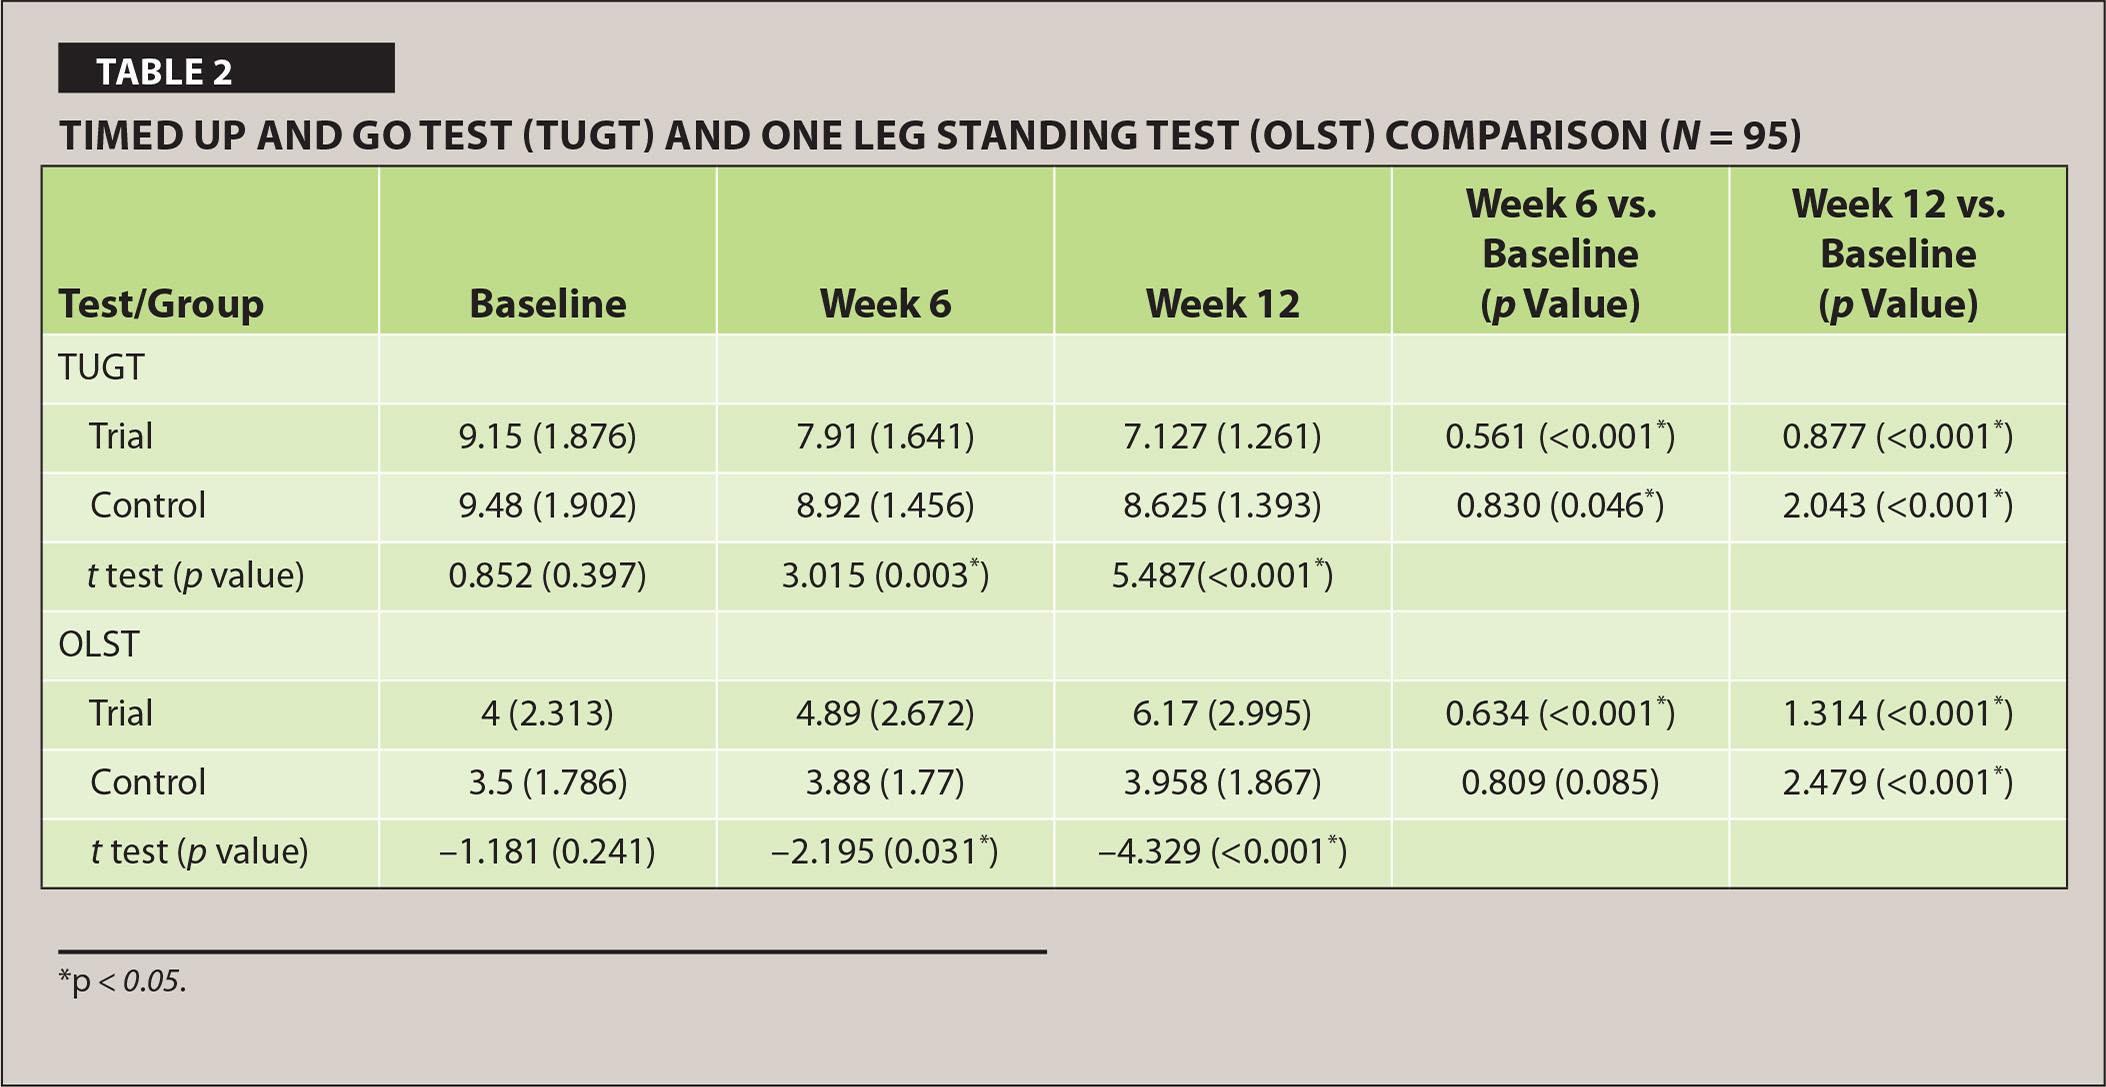 Timed Up and Go Test (TUGT) and One Leg Standing Test (OLST) Comparison (N = 95)